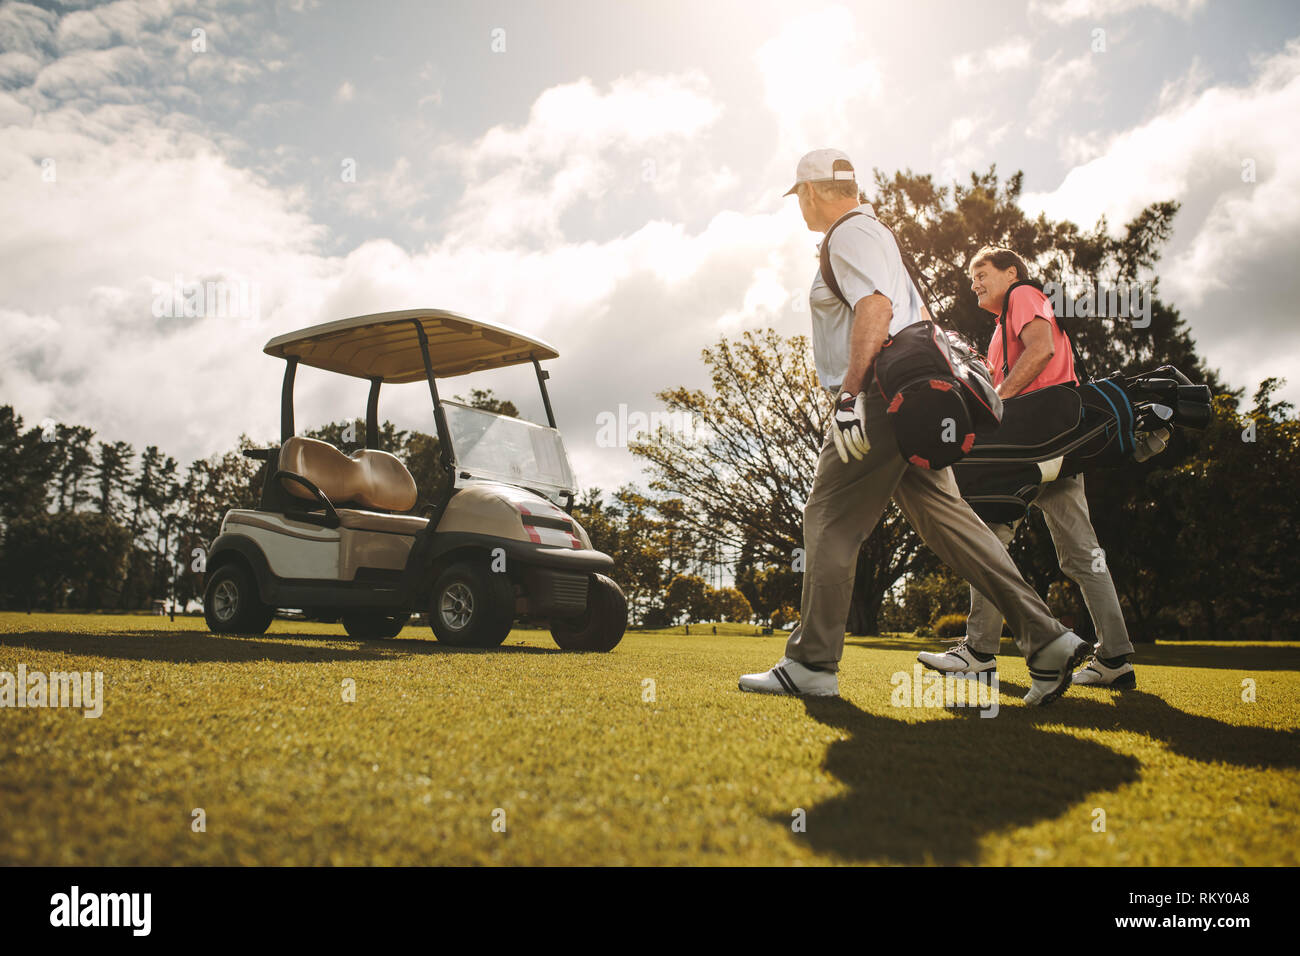 Senior golfers walking together in the golf course with their golf bags. Senior golfers walking and talking after the game. - Stock Image